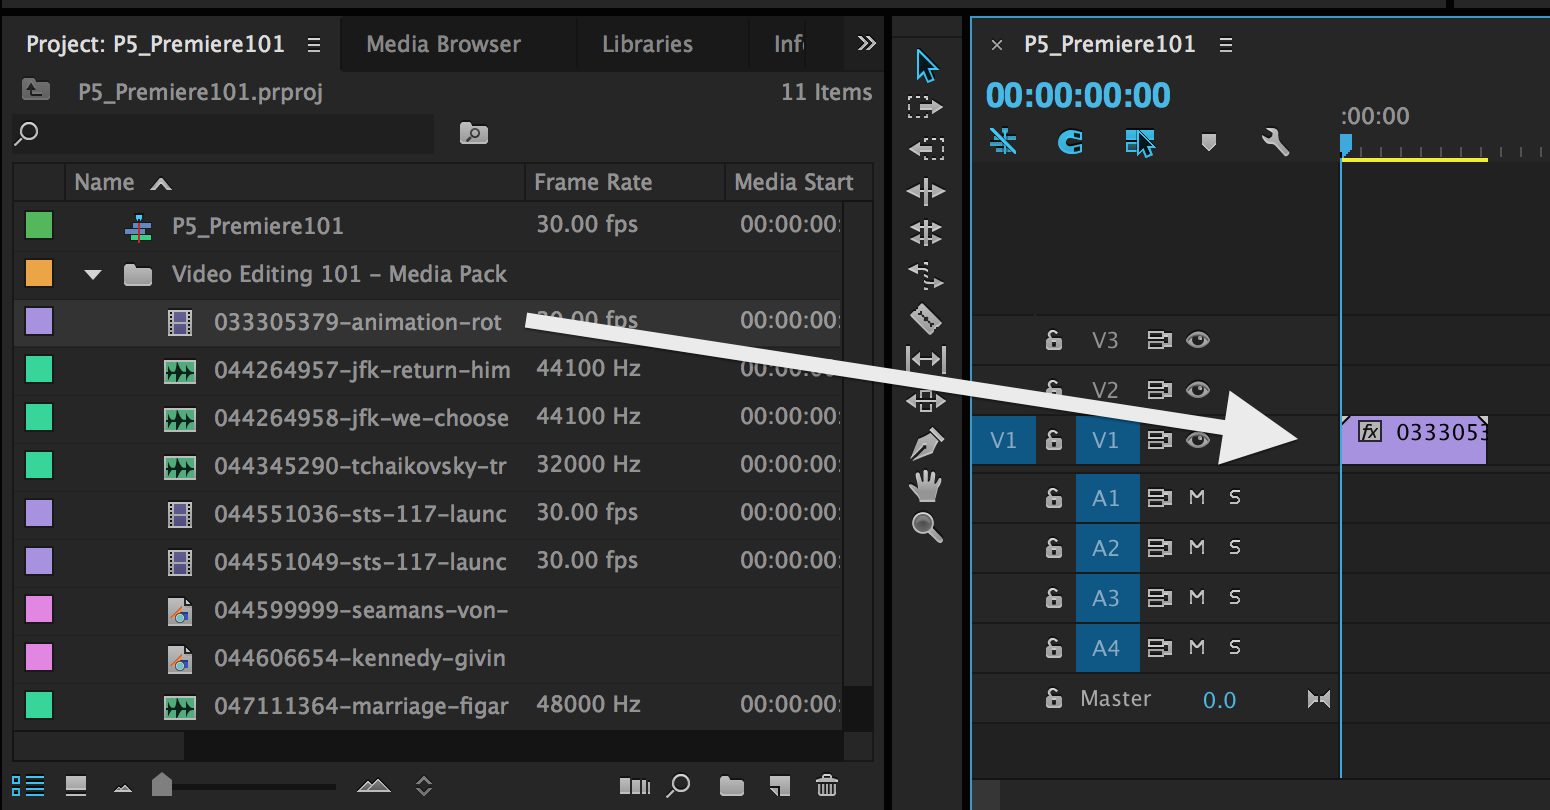 Video editing 101 getting started with adobe premiere pro pond5 as this is the first clip you drop on the timeline premiere pro will ask you if you would like to match the sequence settings to this clip baditri Images